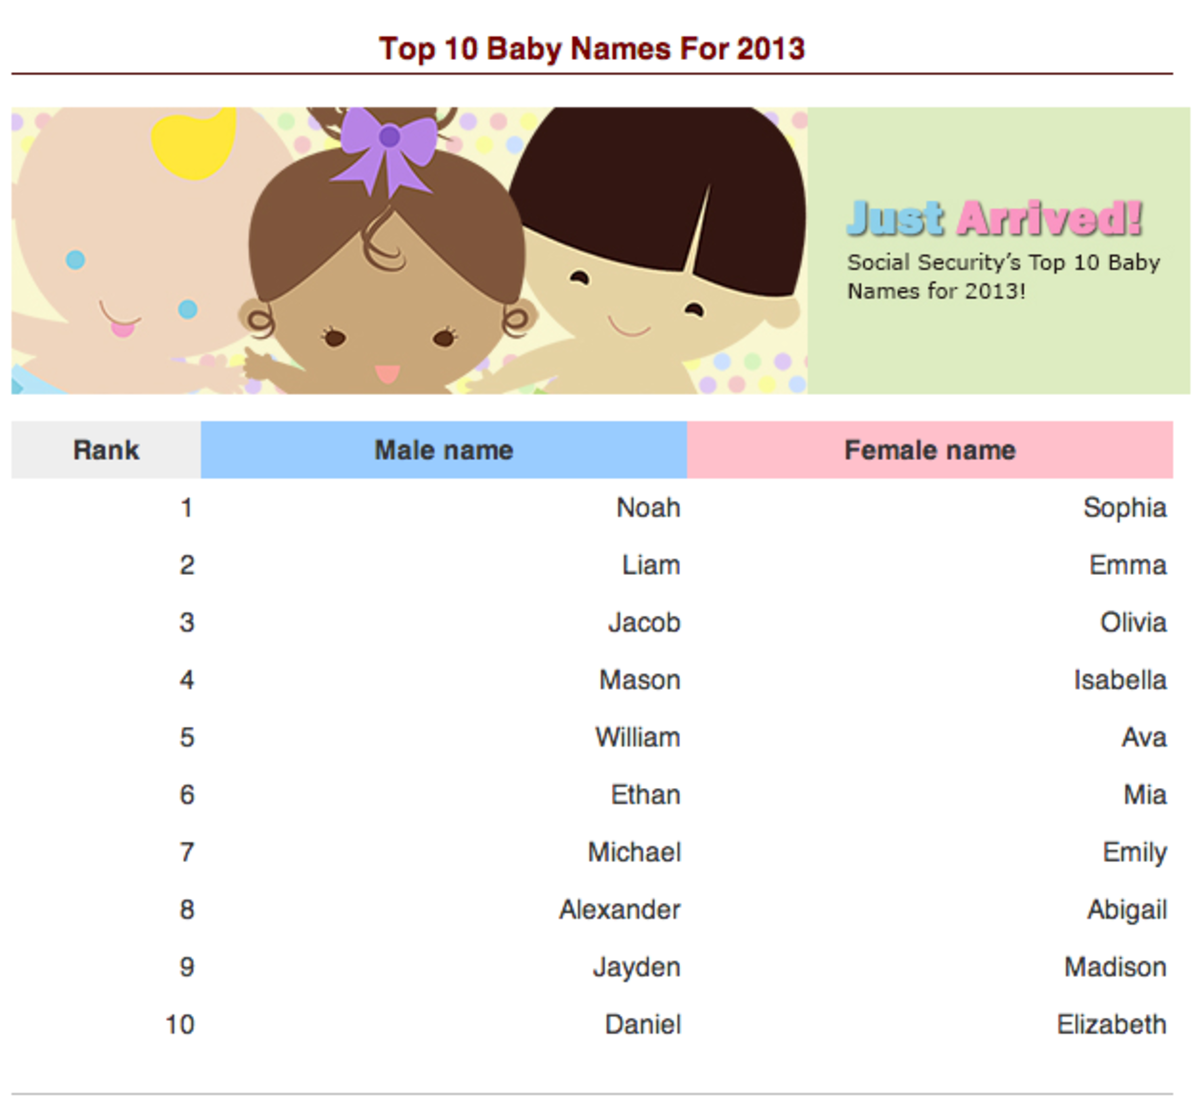 Top 10 Baby Names for 2013